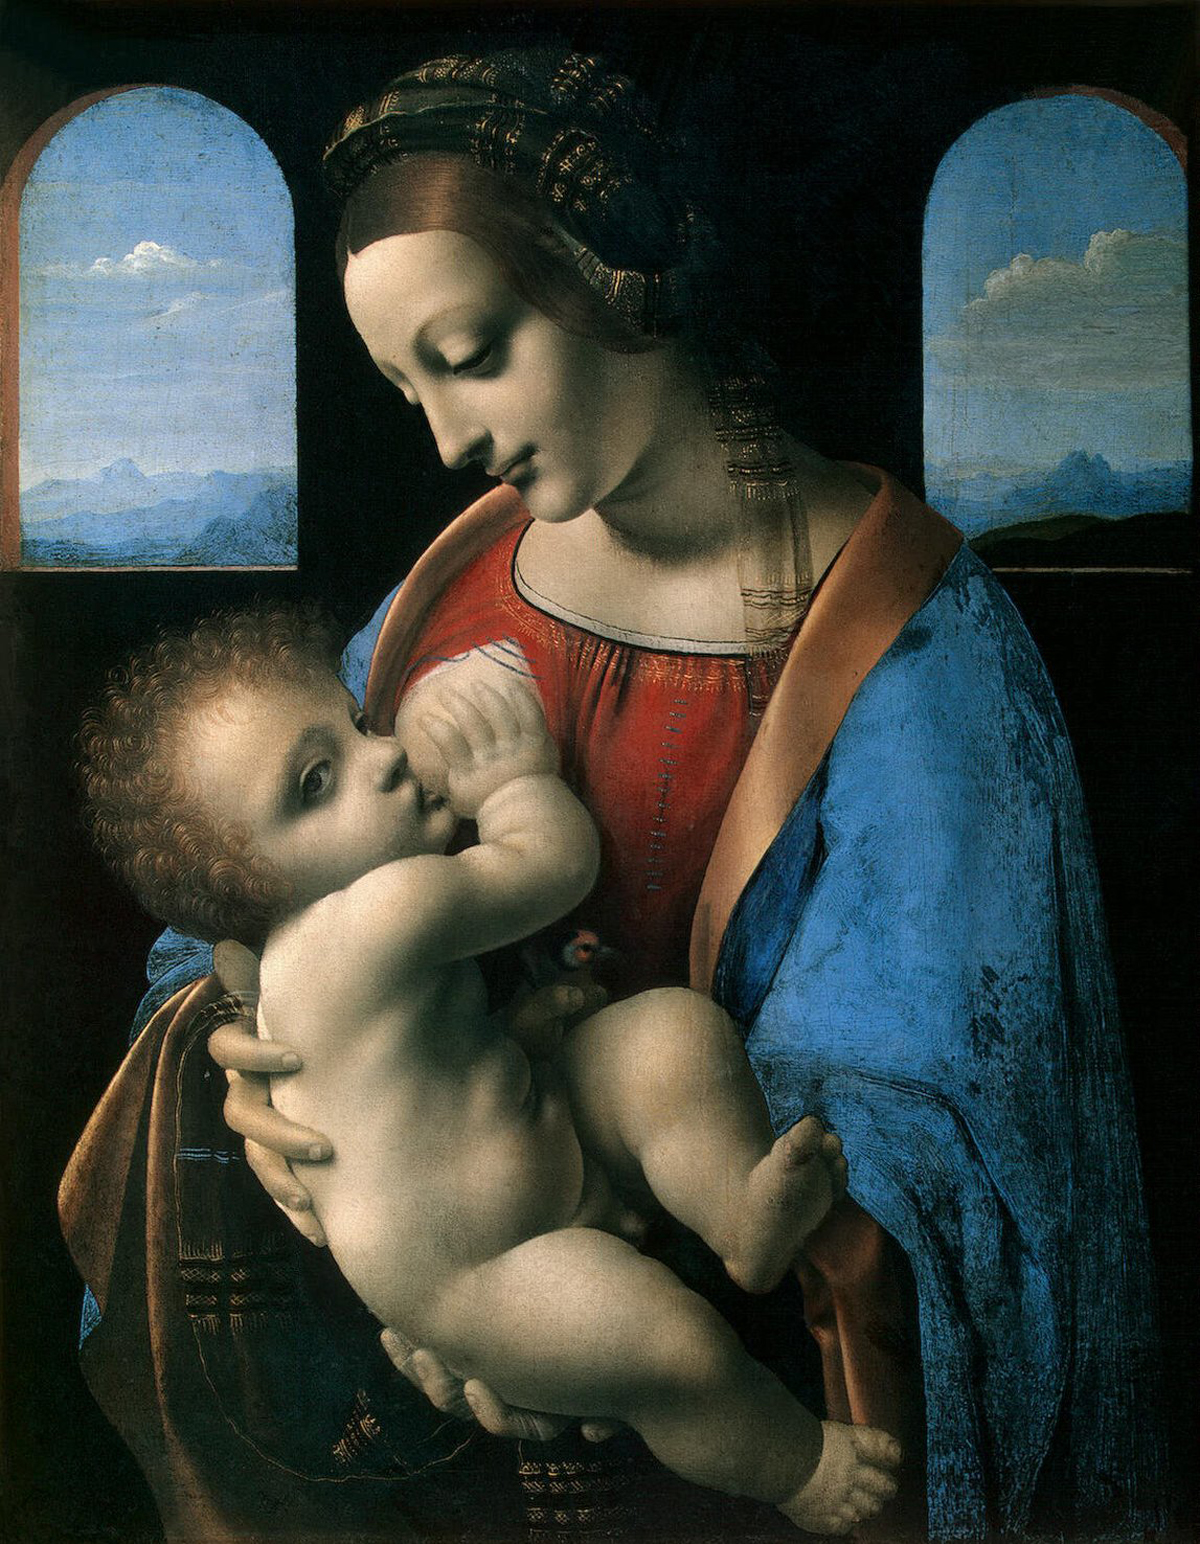 madonna and child leonardo da vinci